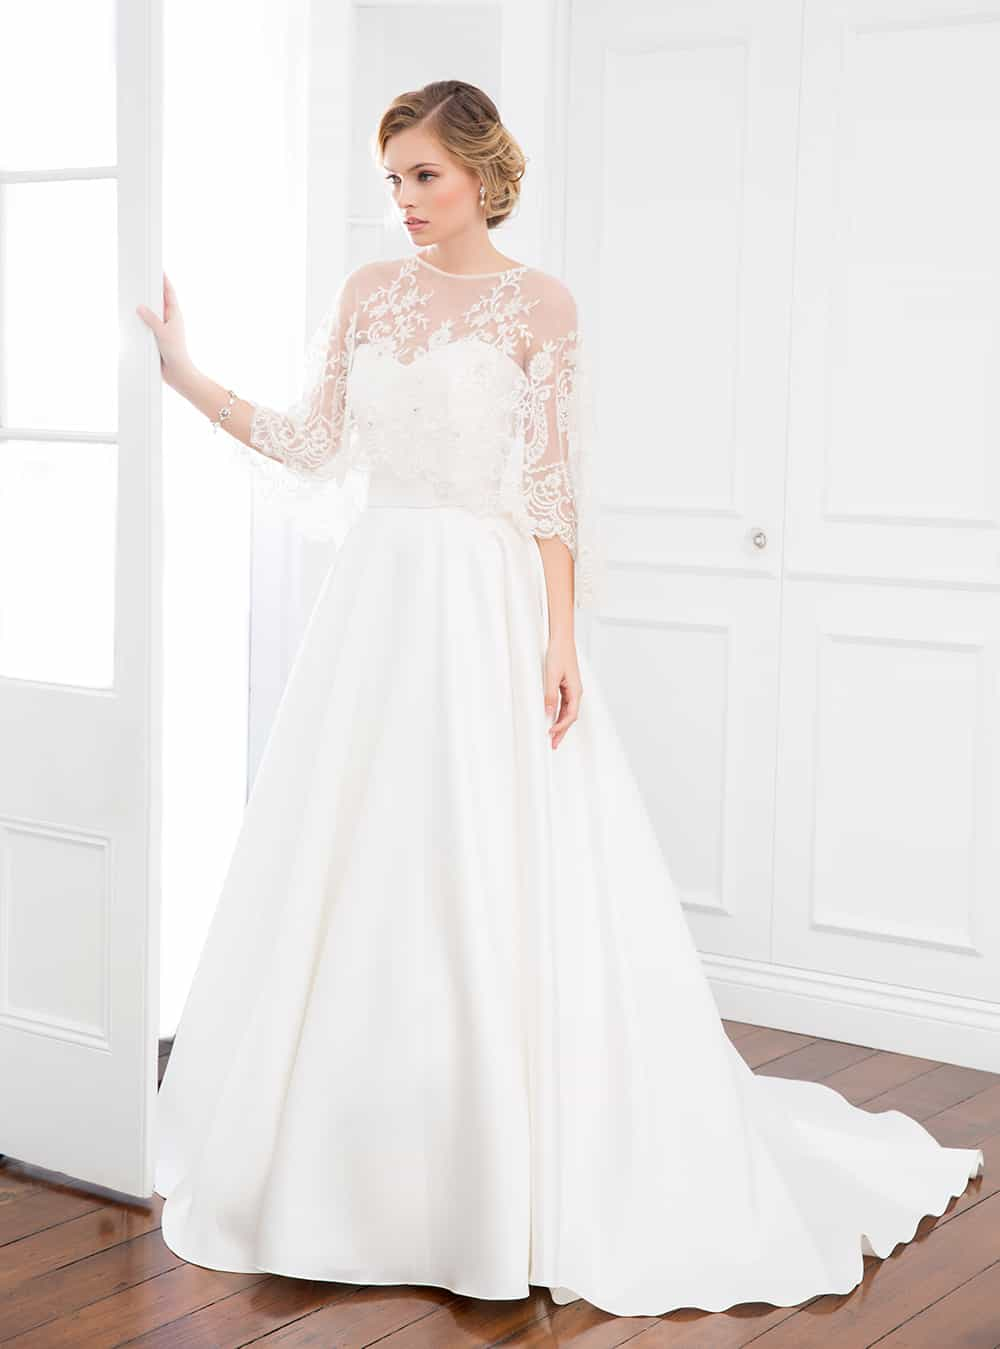 The Carolyn wedding gown with white sheer laced cape from Wendy Makin Couture.